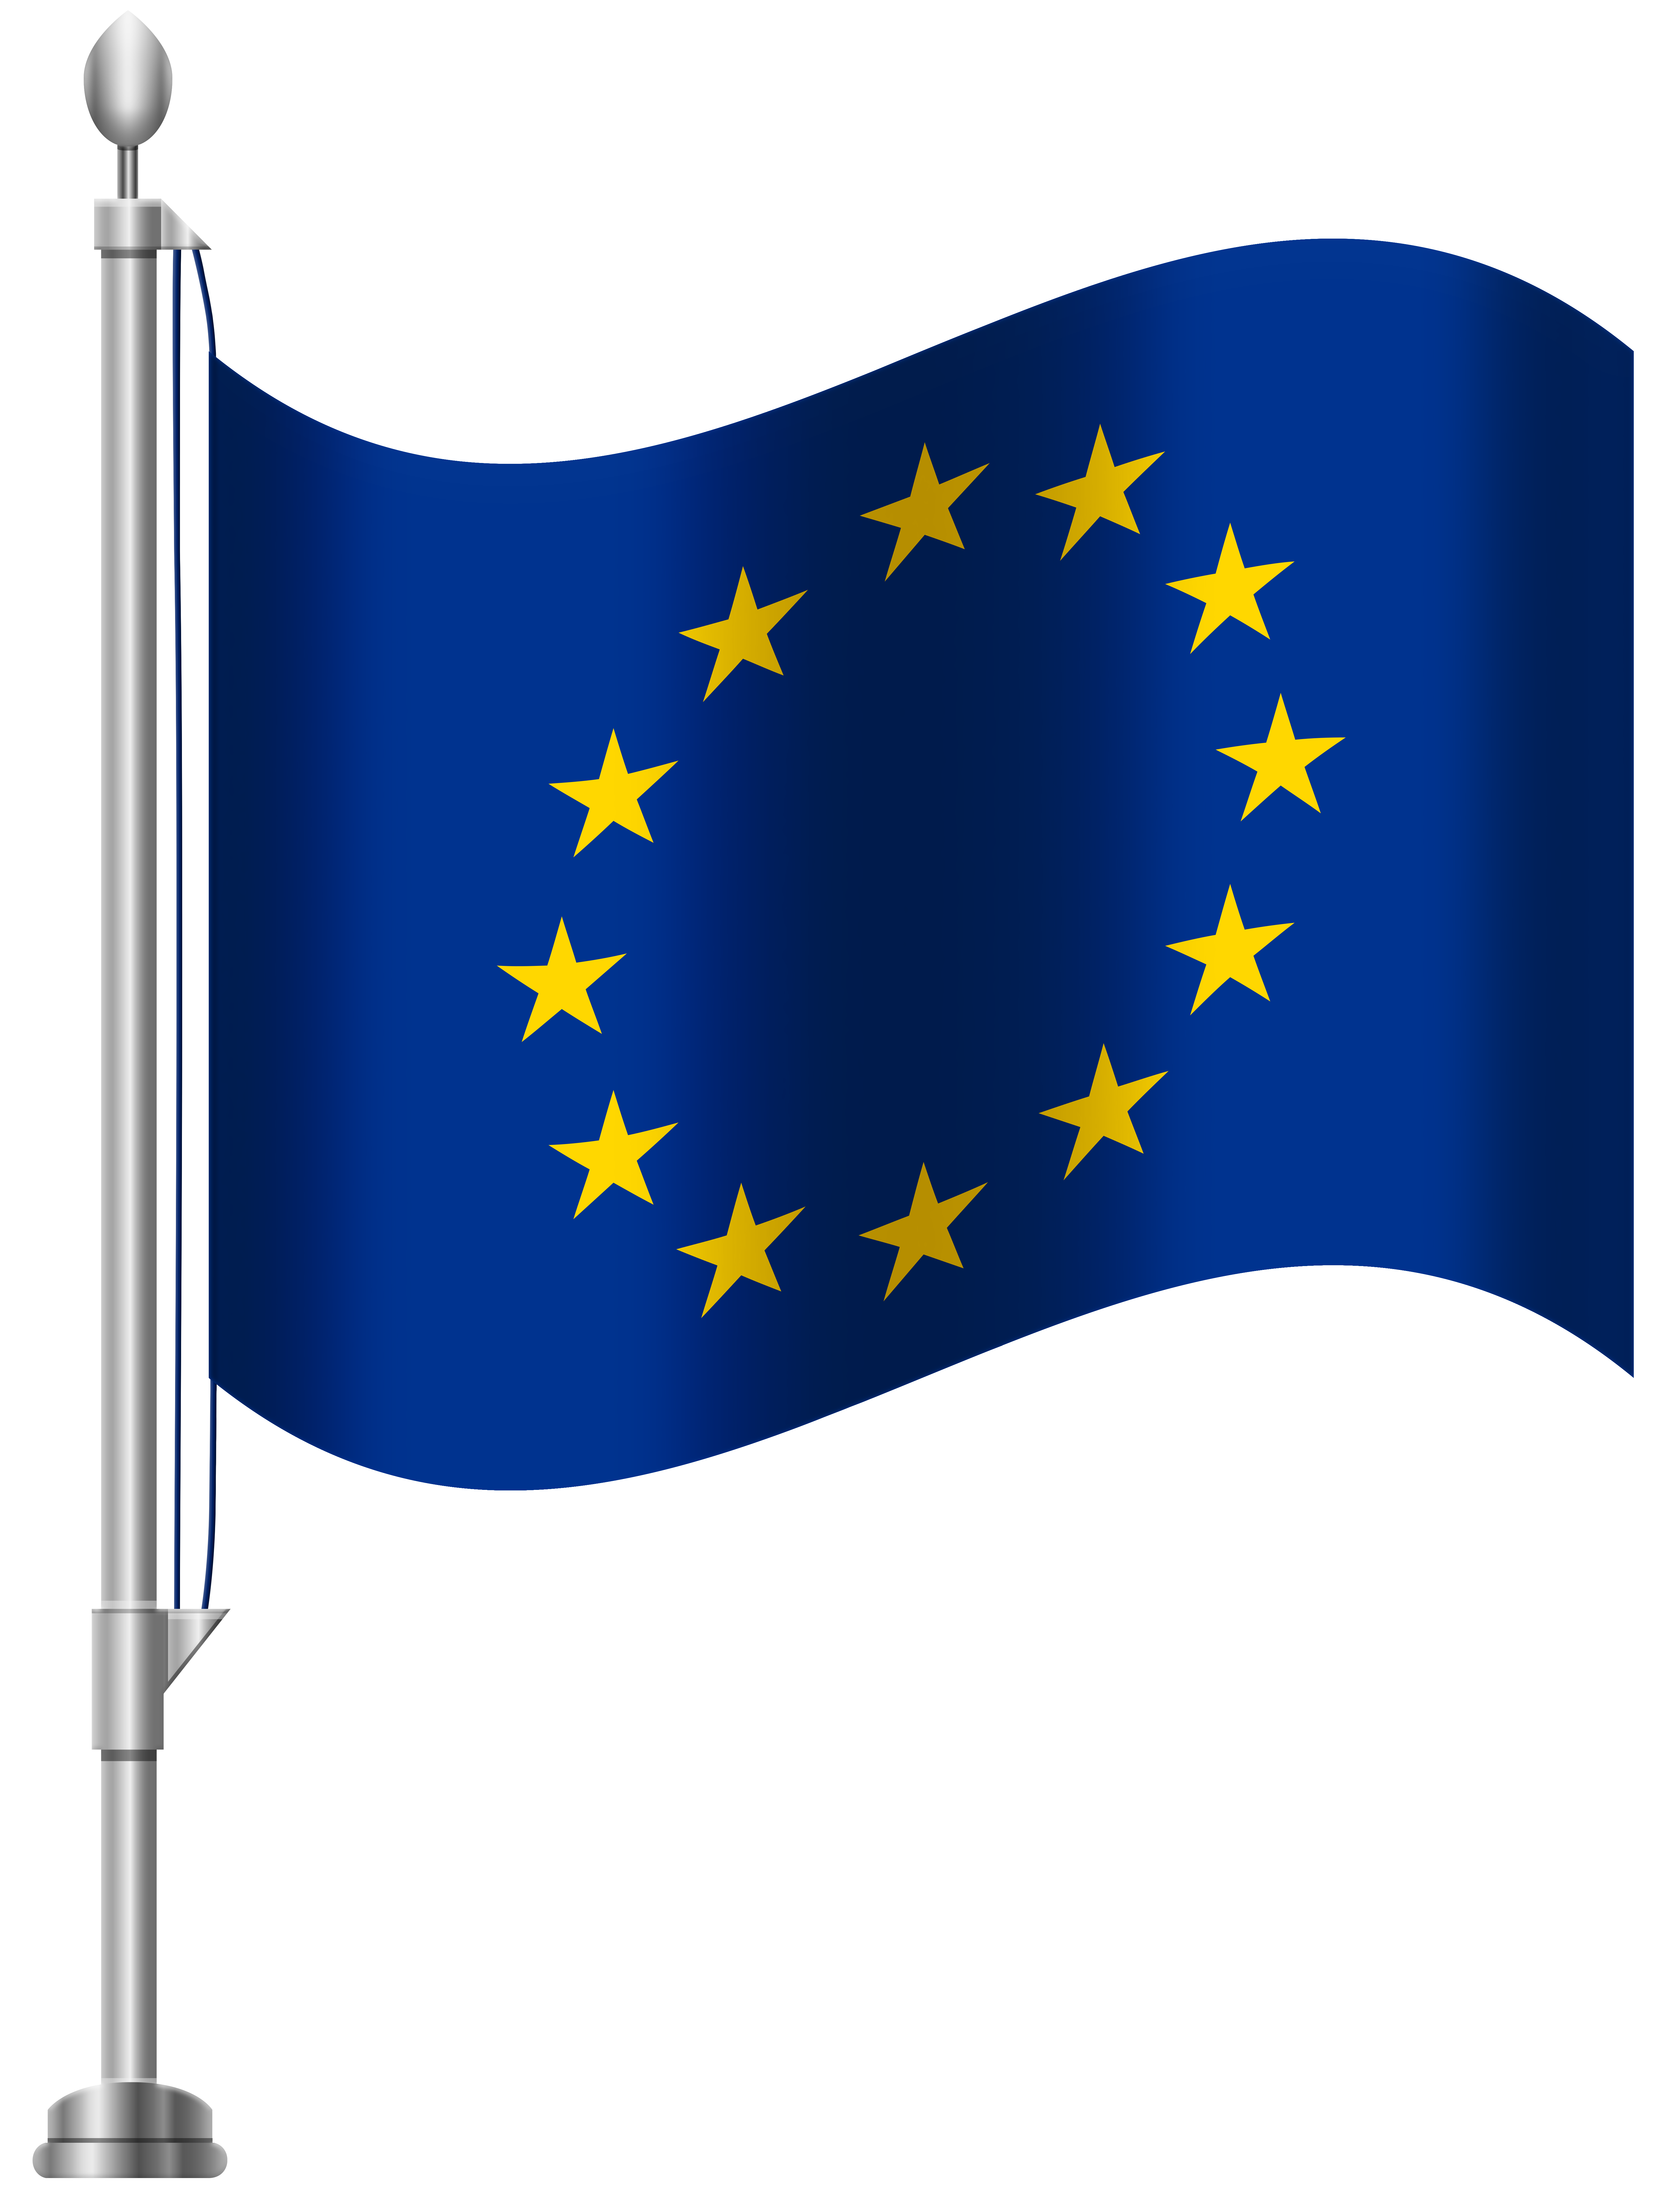 collection of high. Europe clipart flag europe